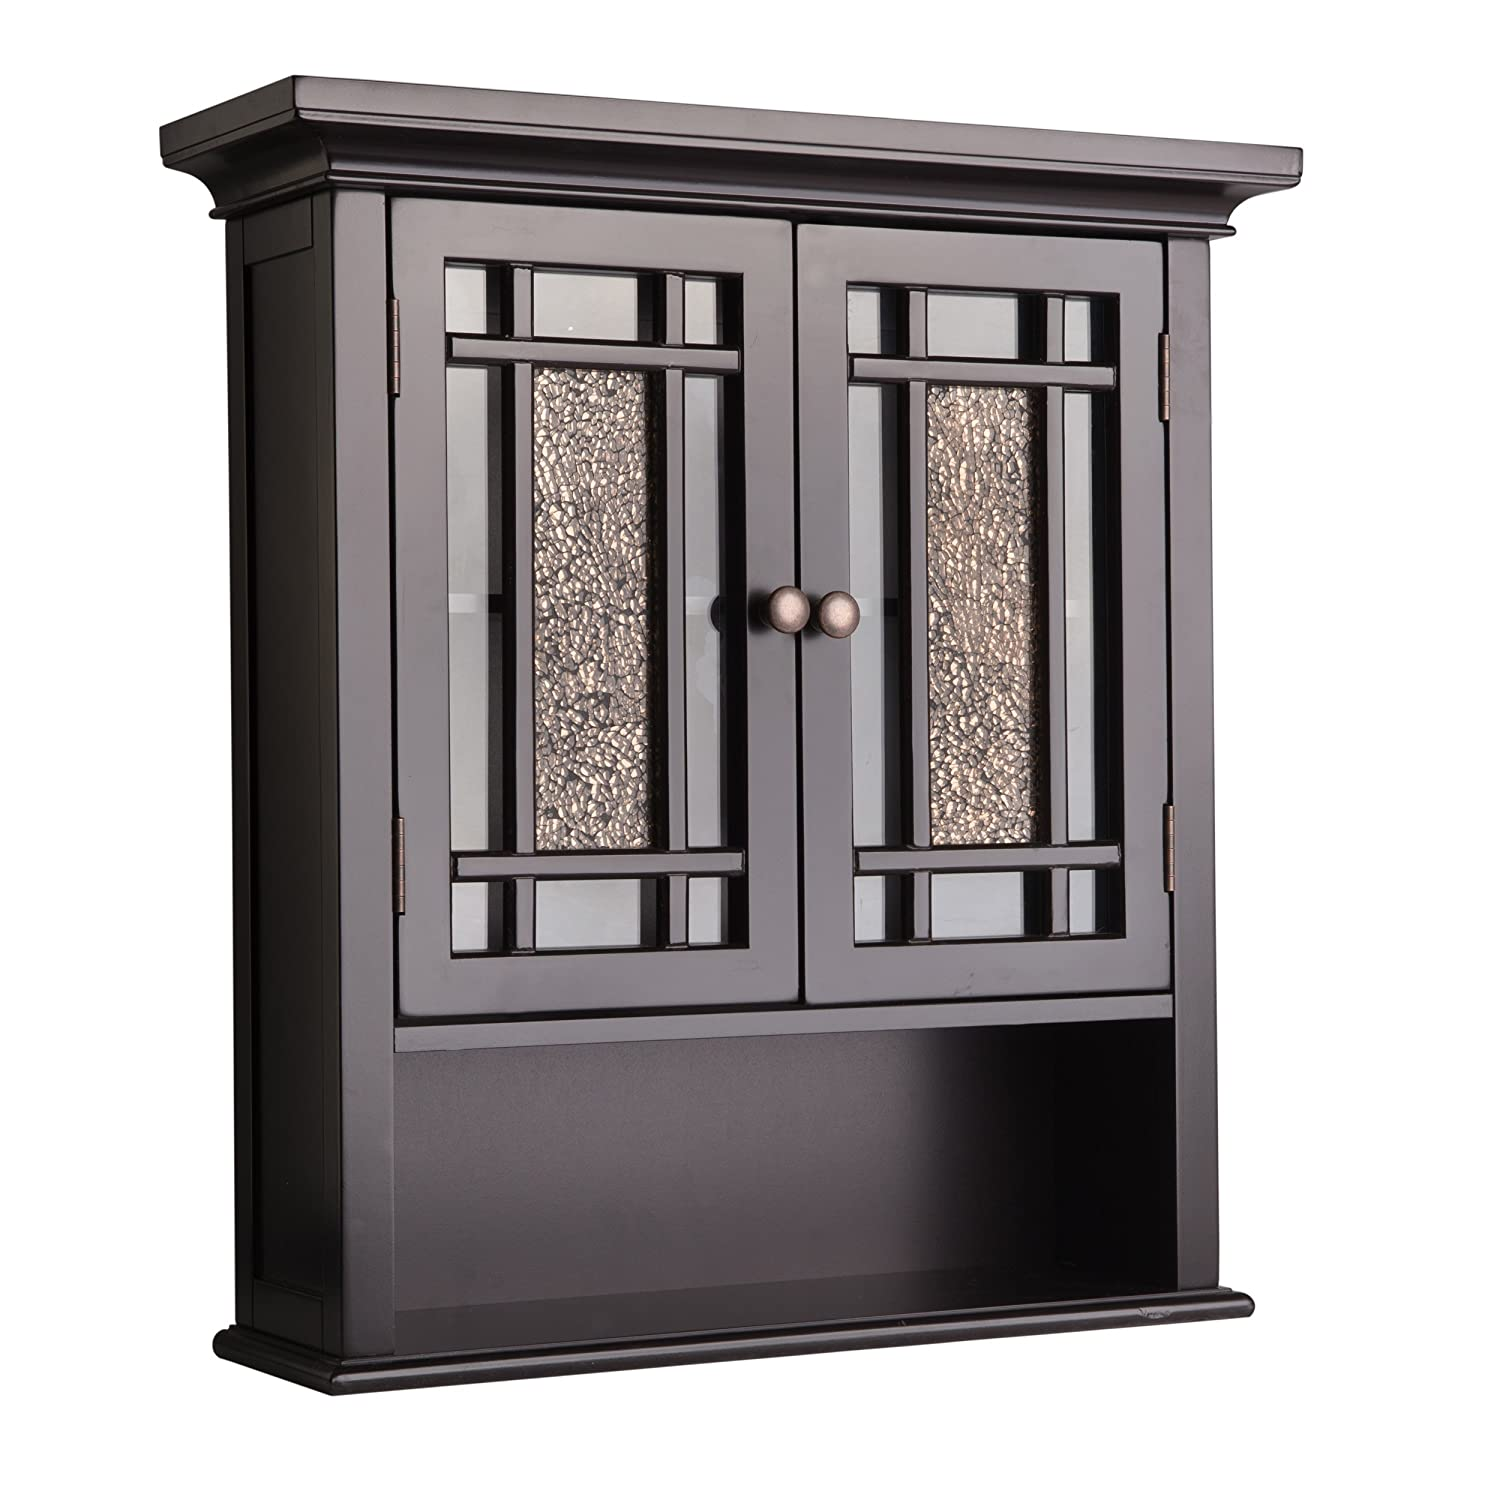 Amazon Com Elegant Home Fashions Whitney Wall Cabinet With 2 Doors